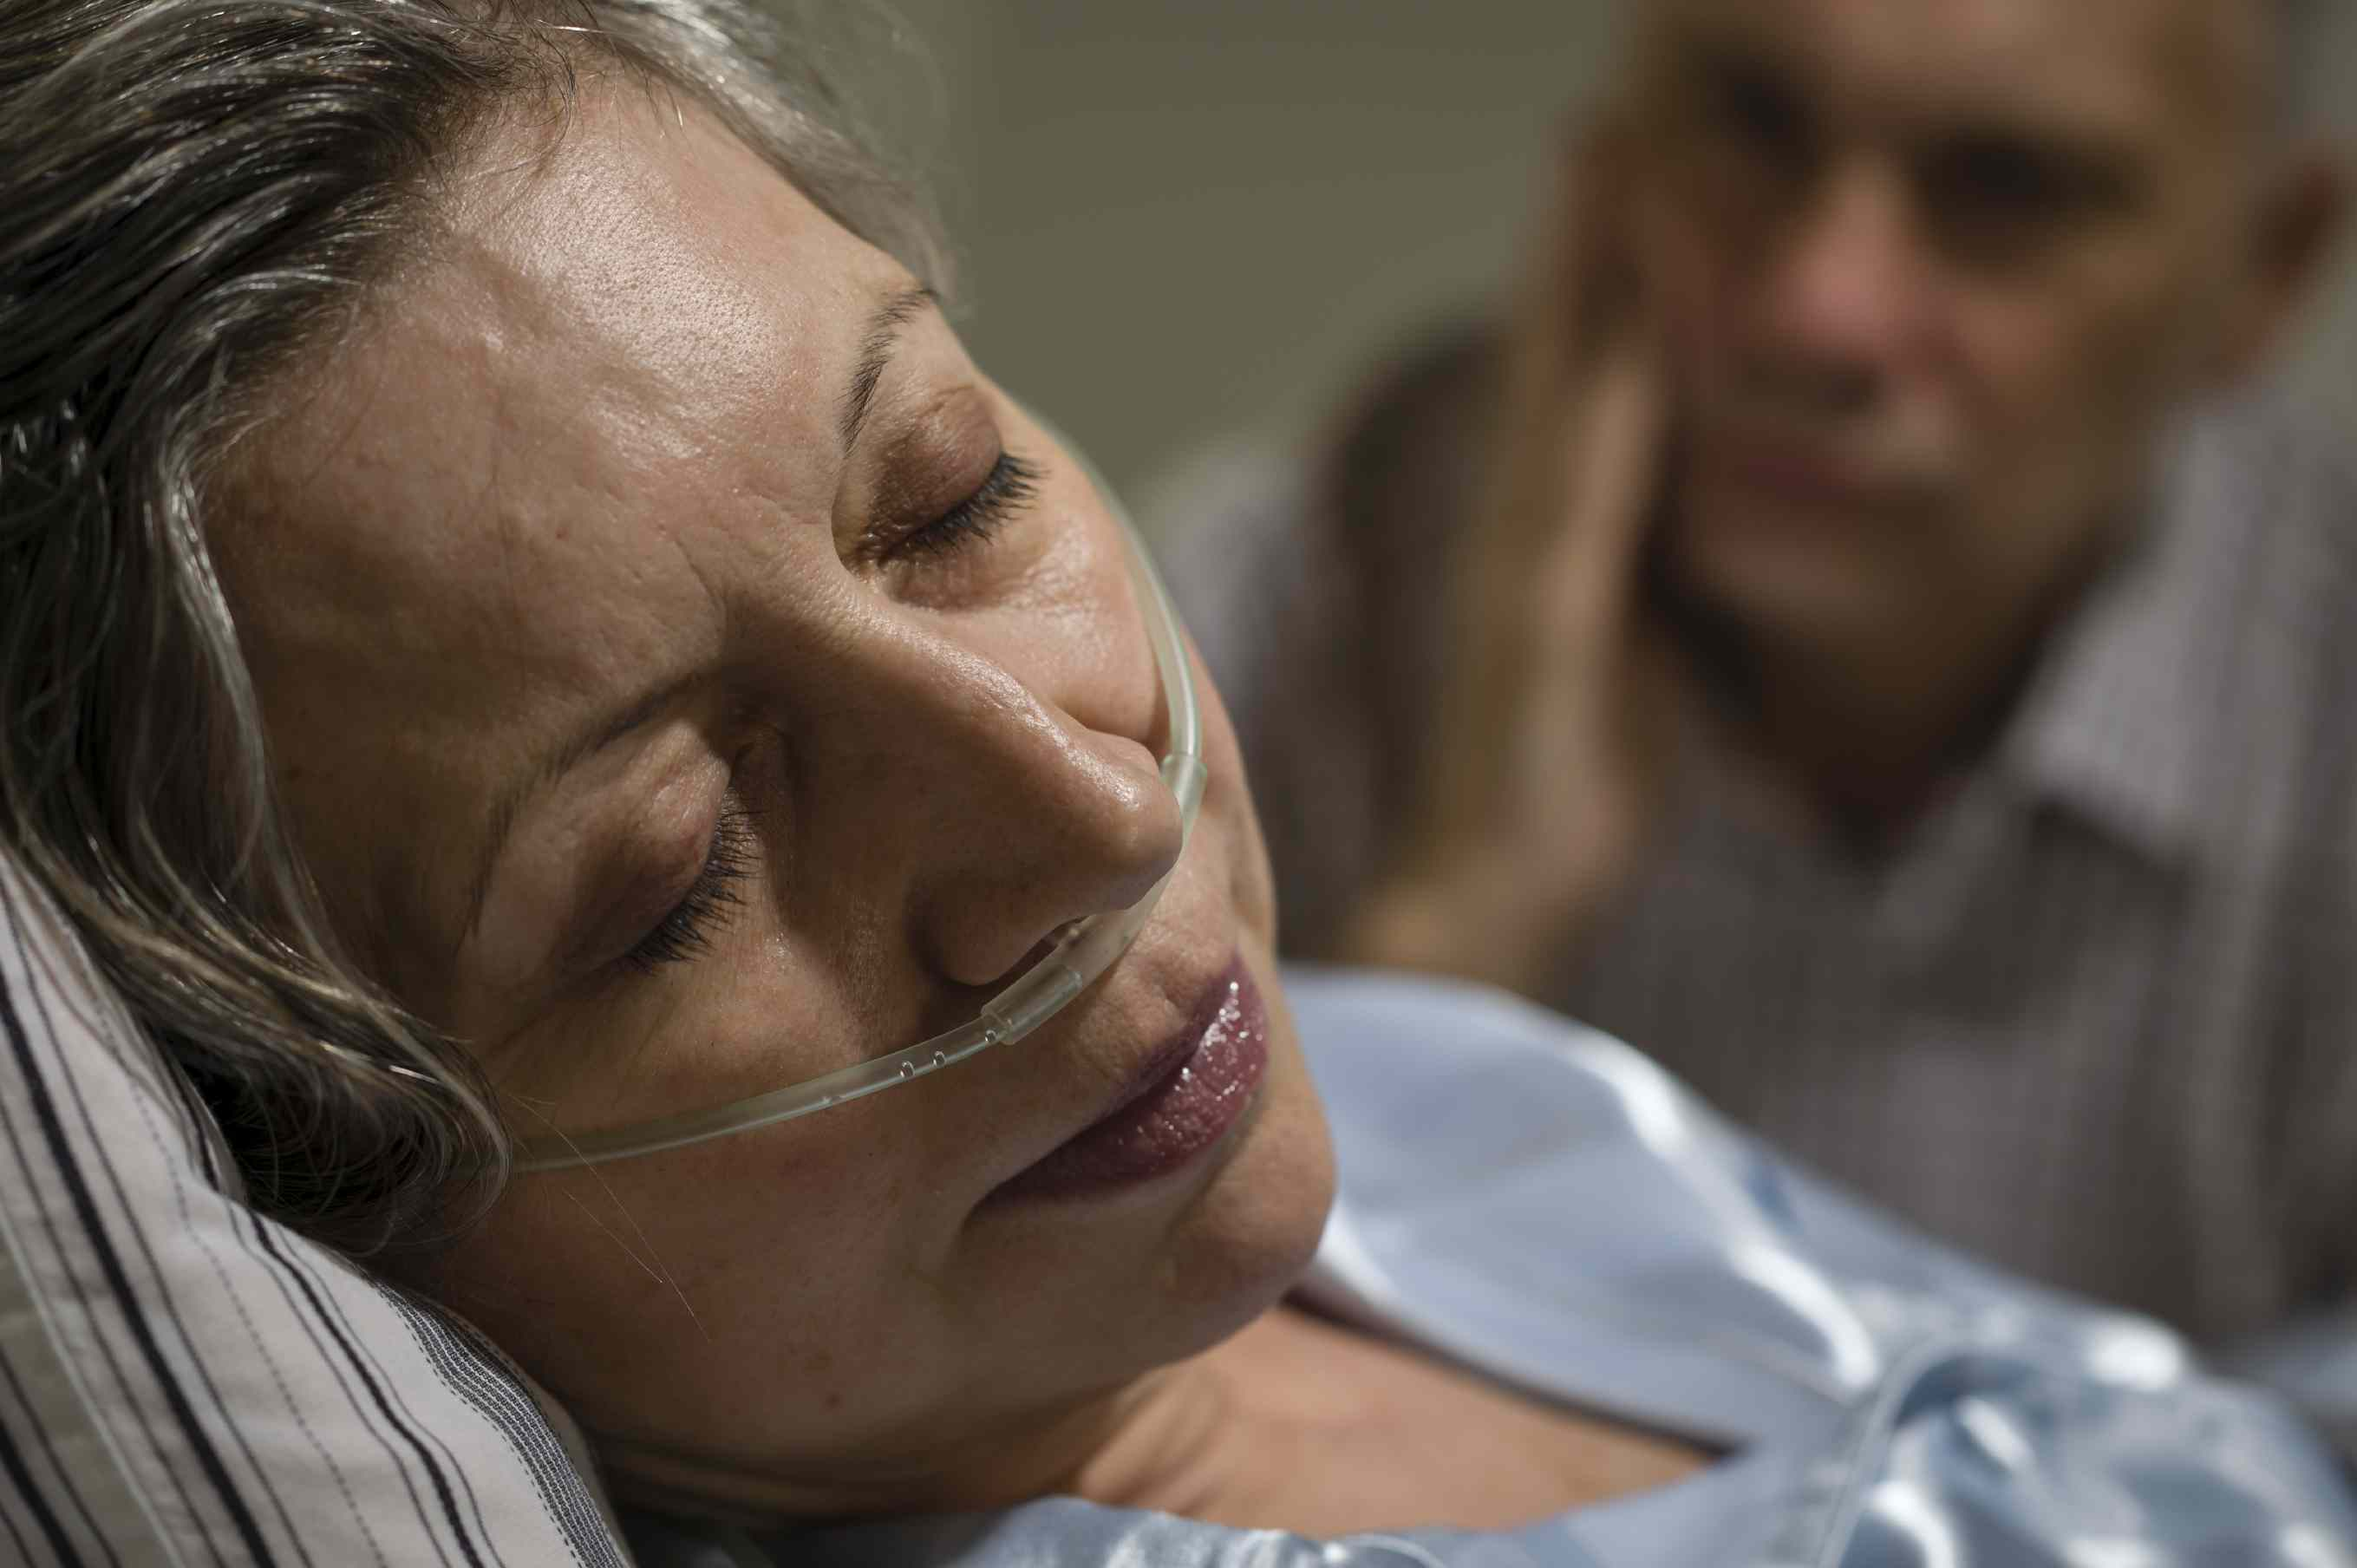 Woman on oxygen in a hospital bed with man in the background looking at her